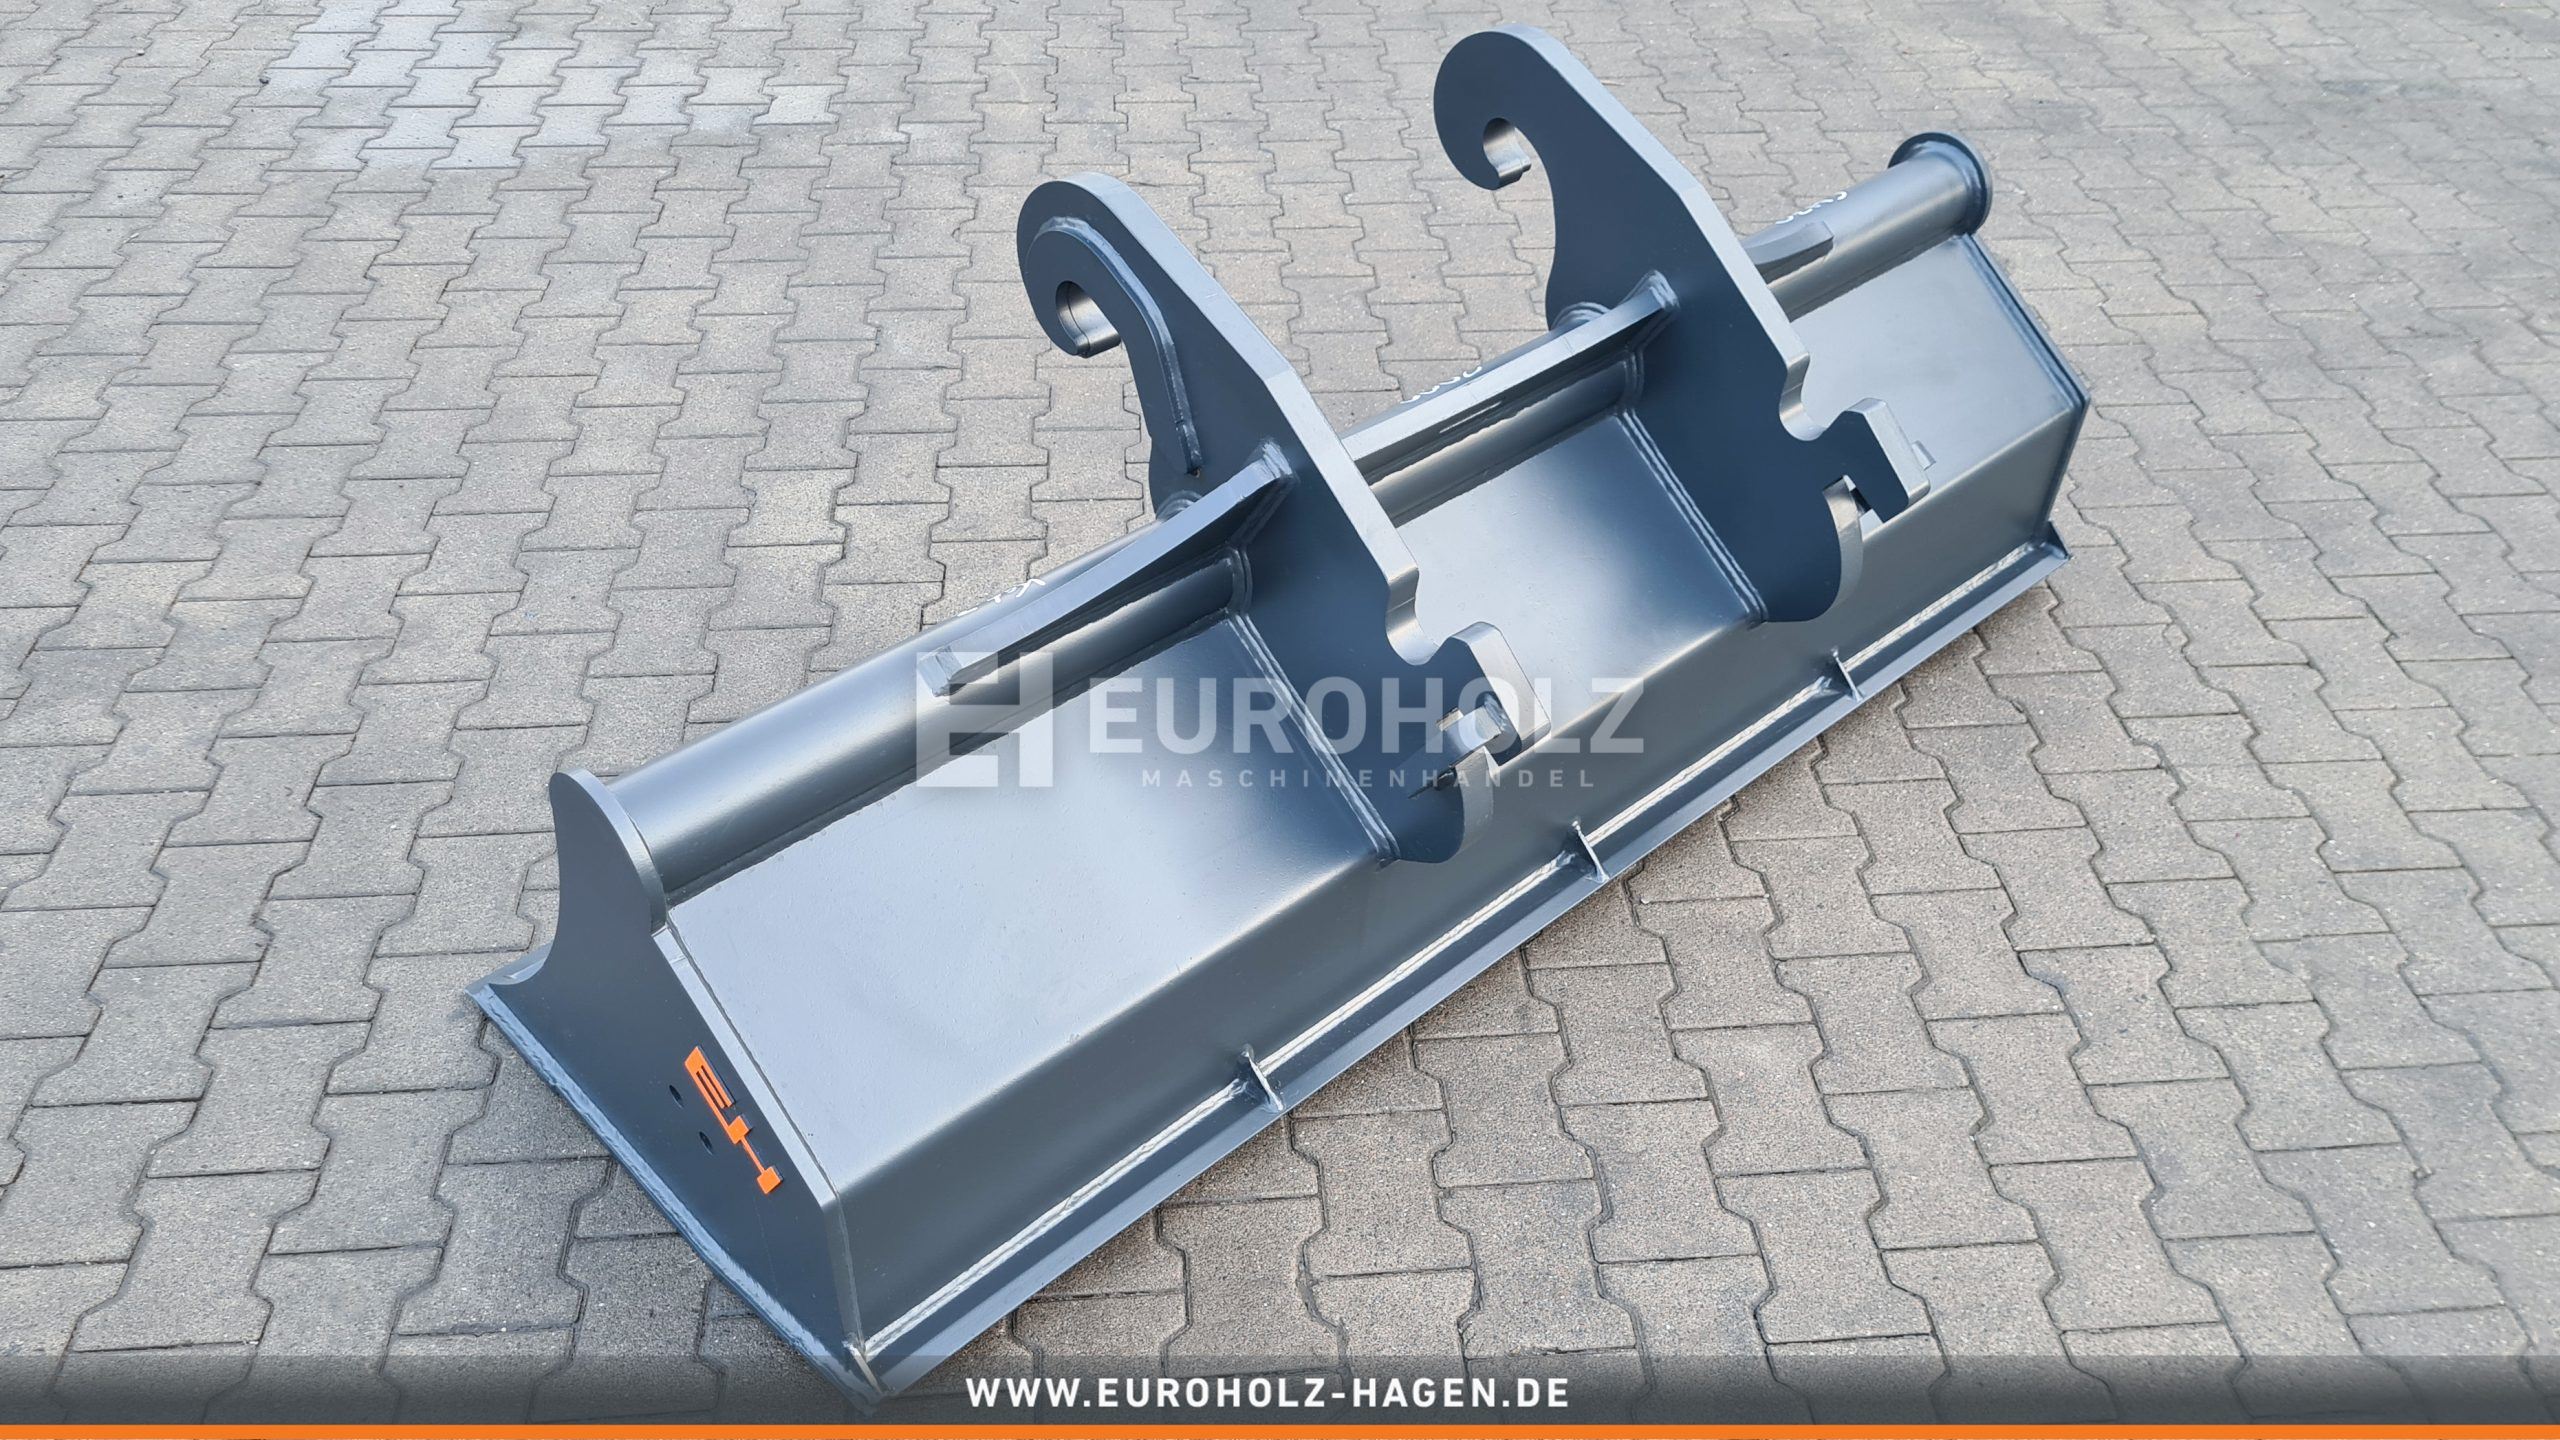 Ditch cleaning bucket suitable for Verachtert CW30 / 2000 mm / cat. 3G